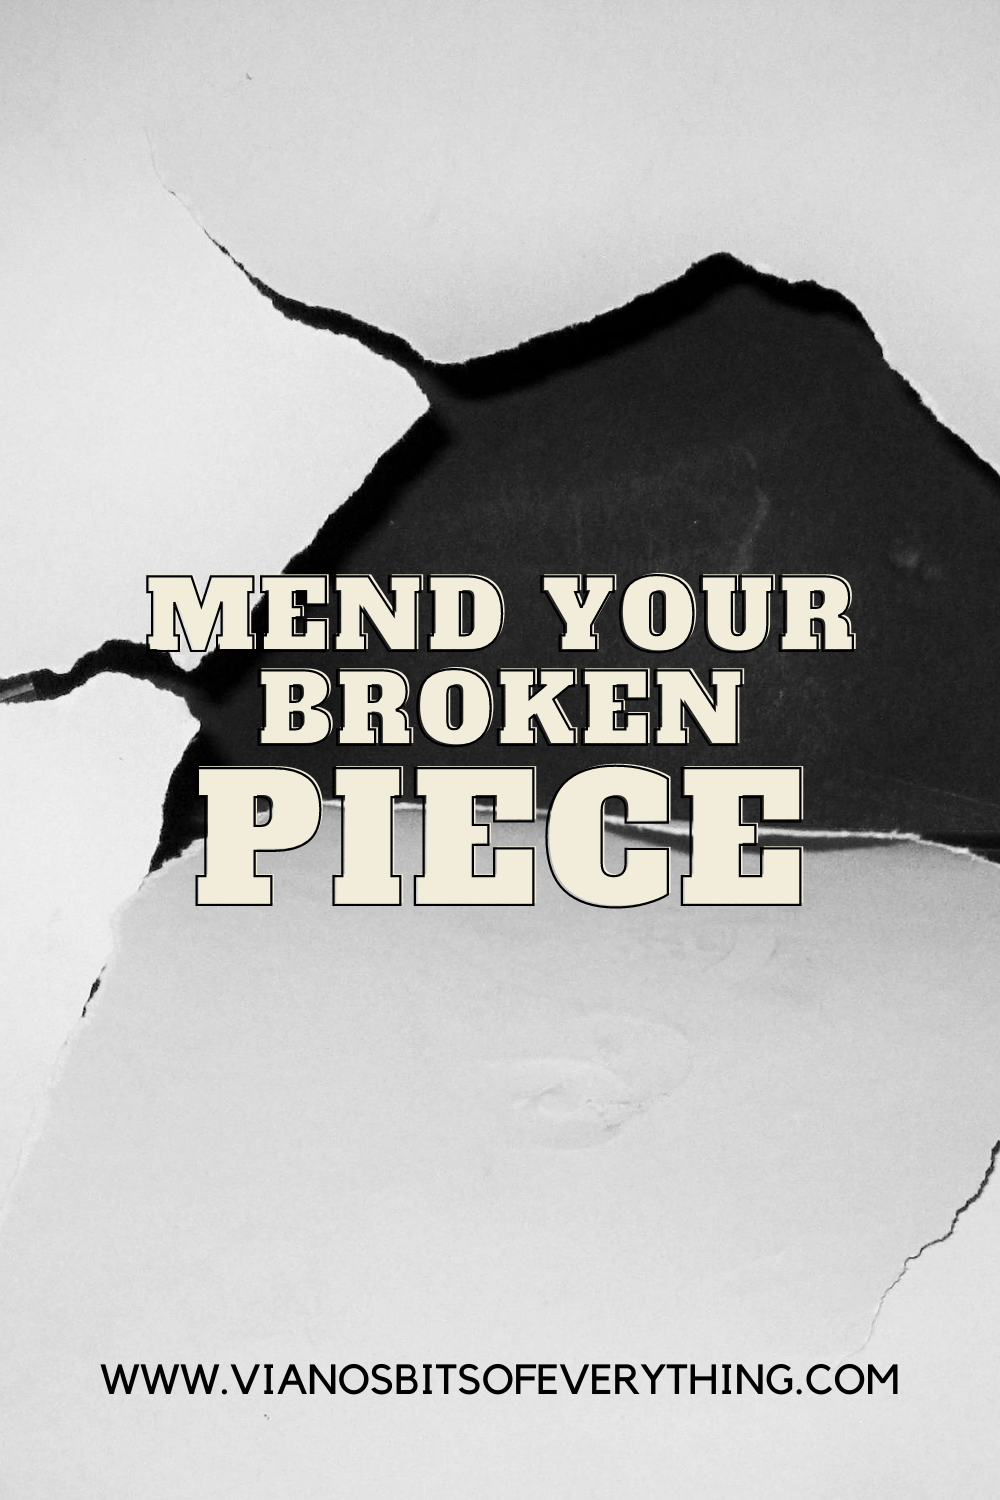 Mend Your Broken Piece!